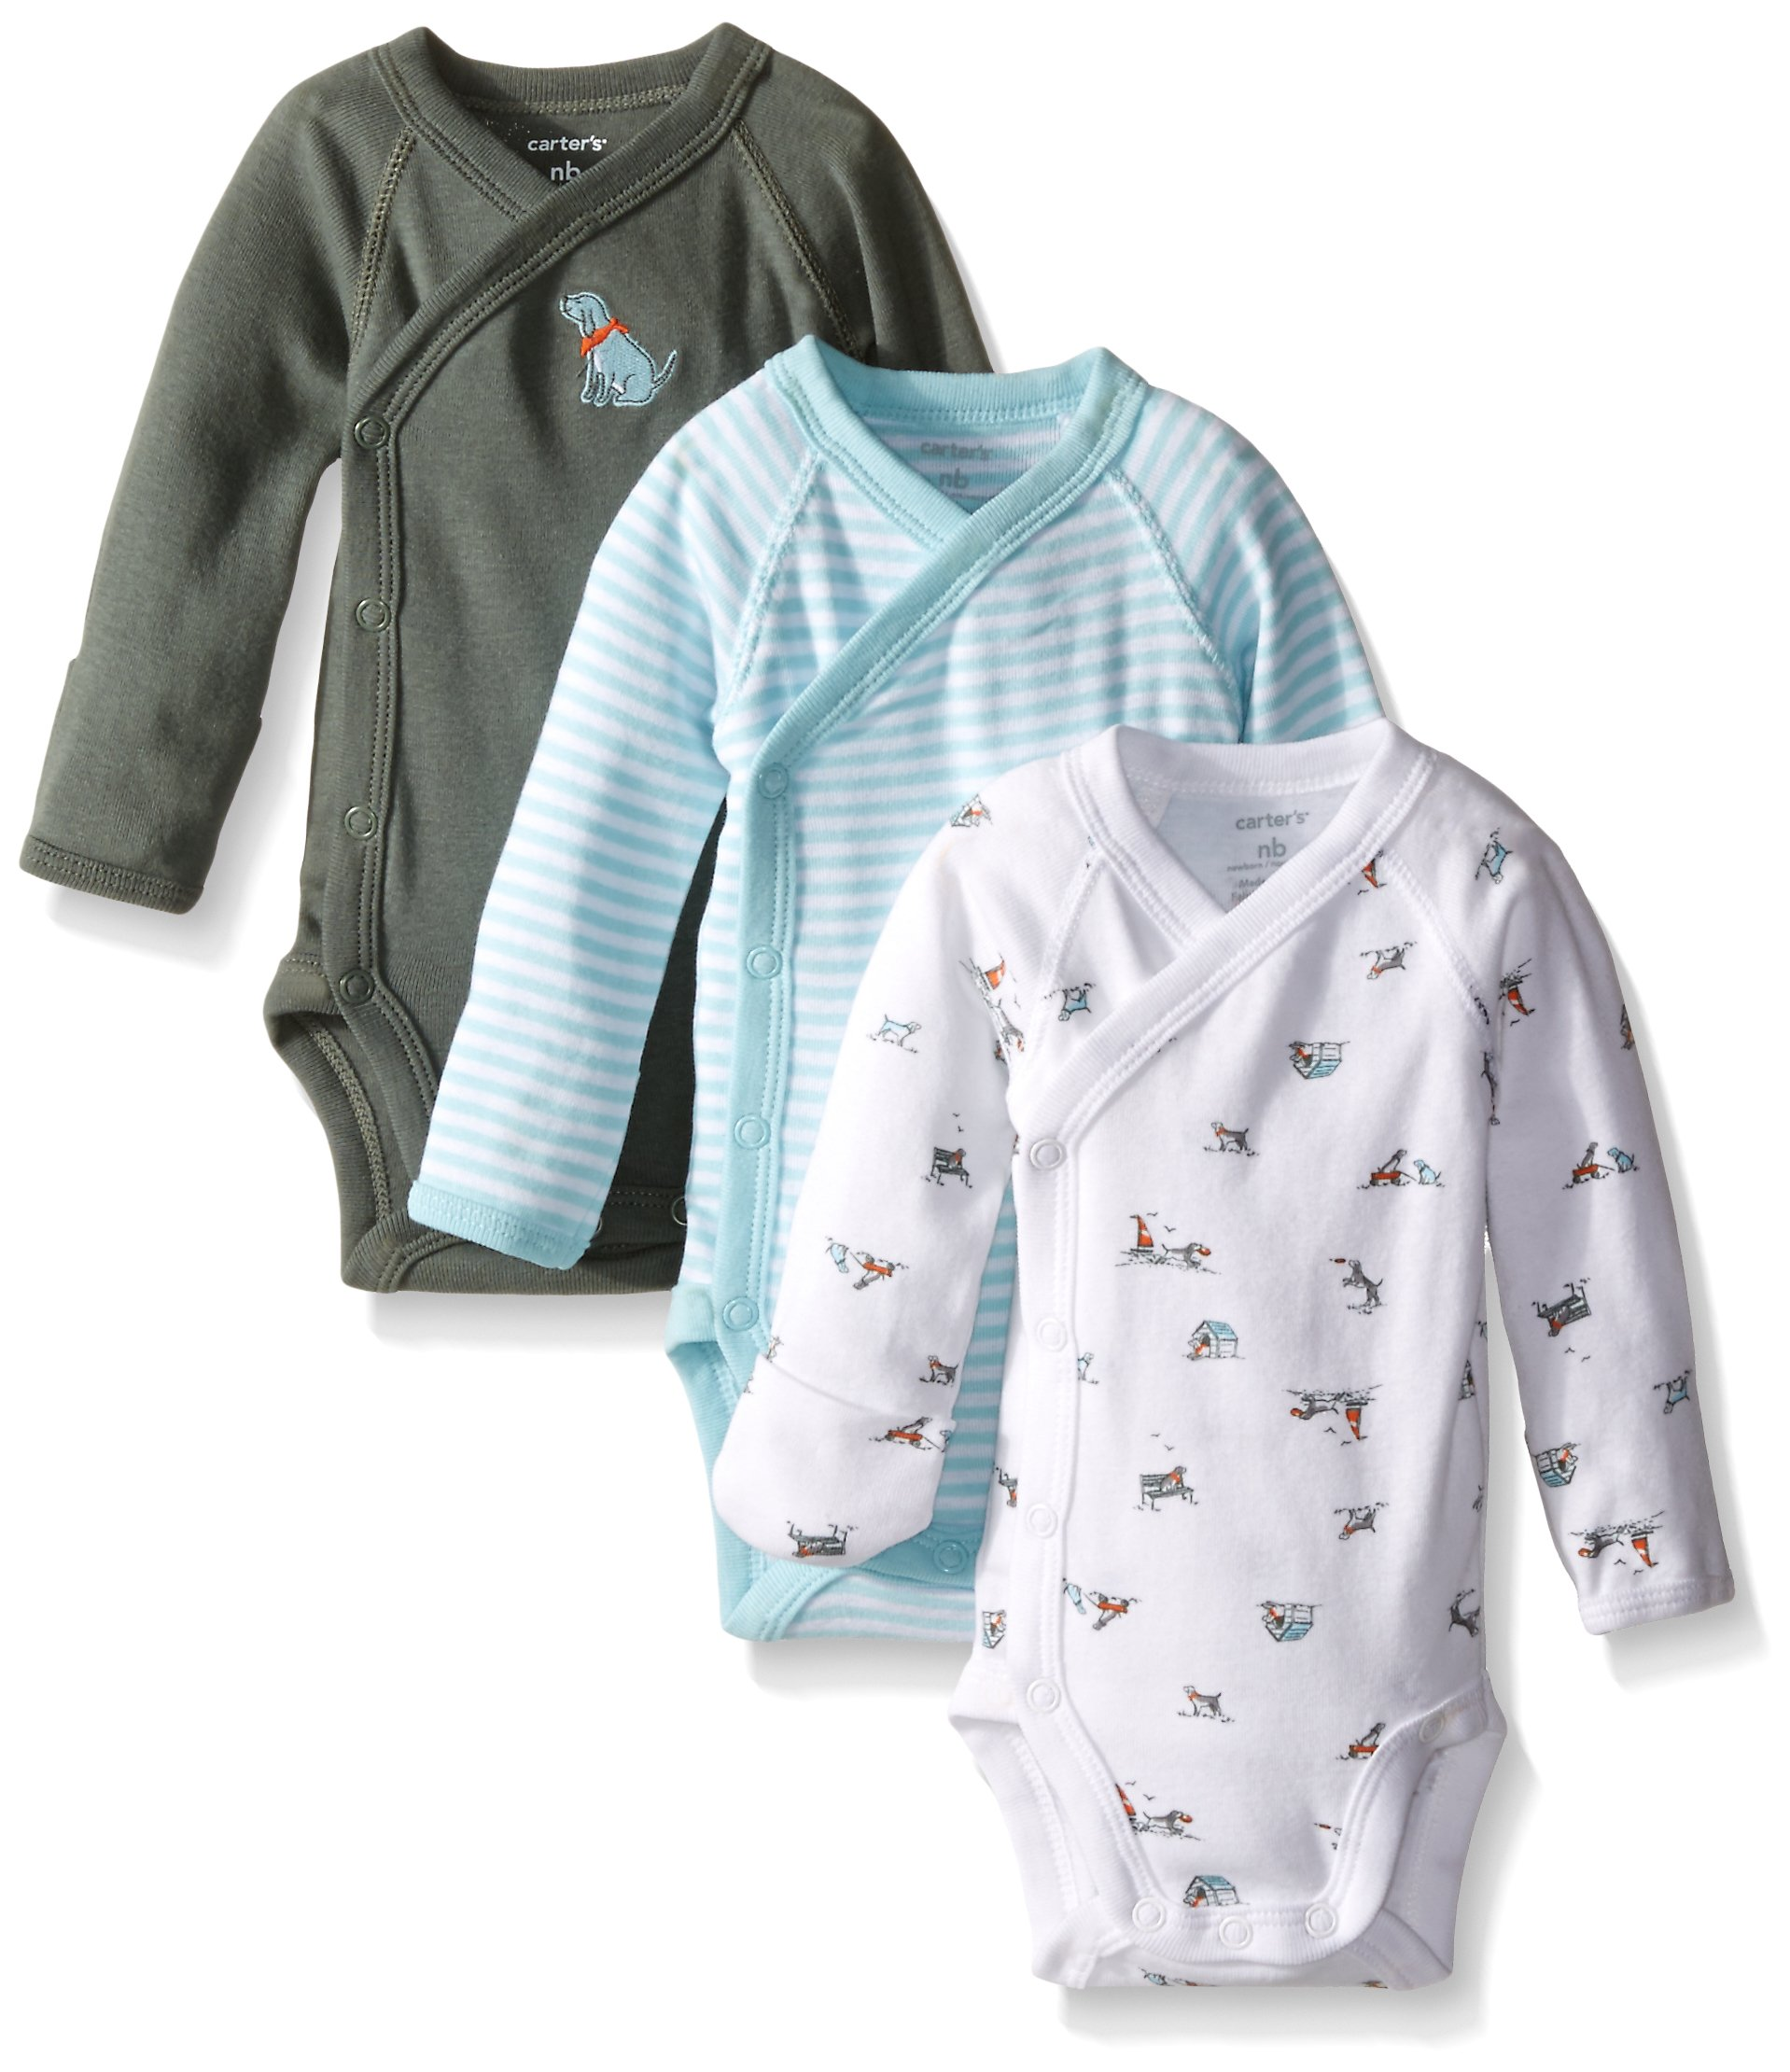 99a493b16 Galleon - Carter's Baby Boys' 3 Pack Side Snap Bodysuits (Baby) - Olive - 3M